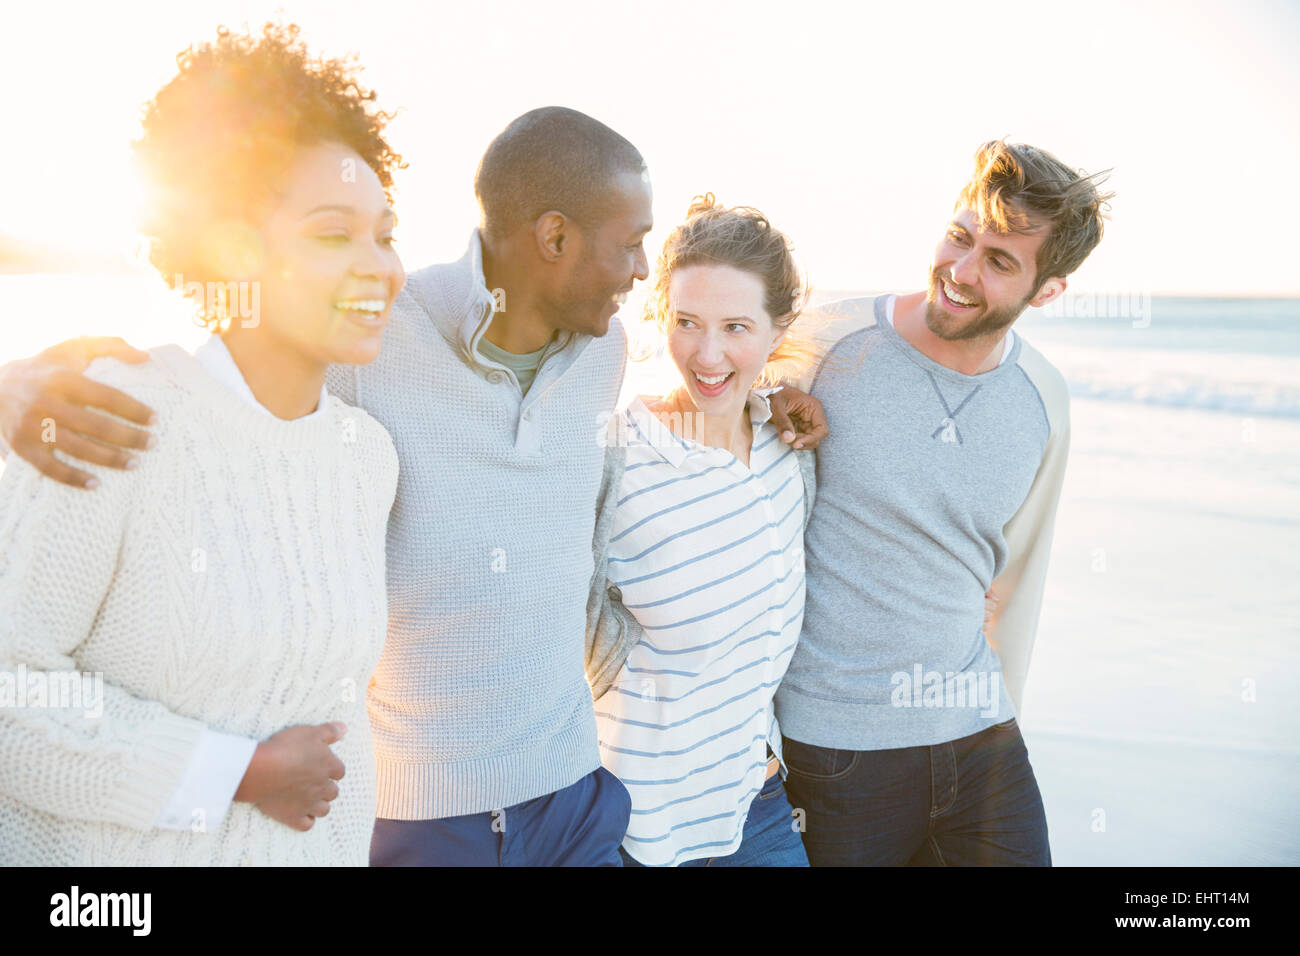 Group of cheerful friends on beach - Stock Image